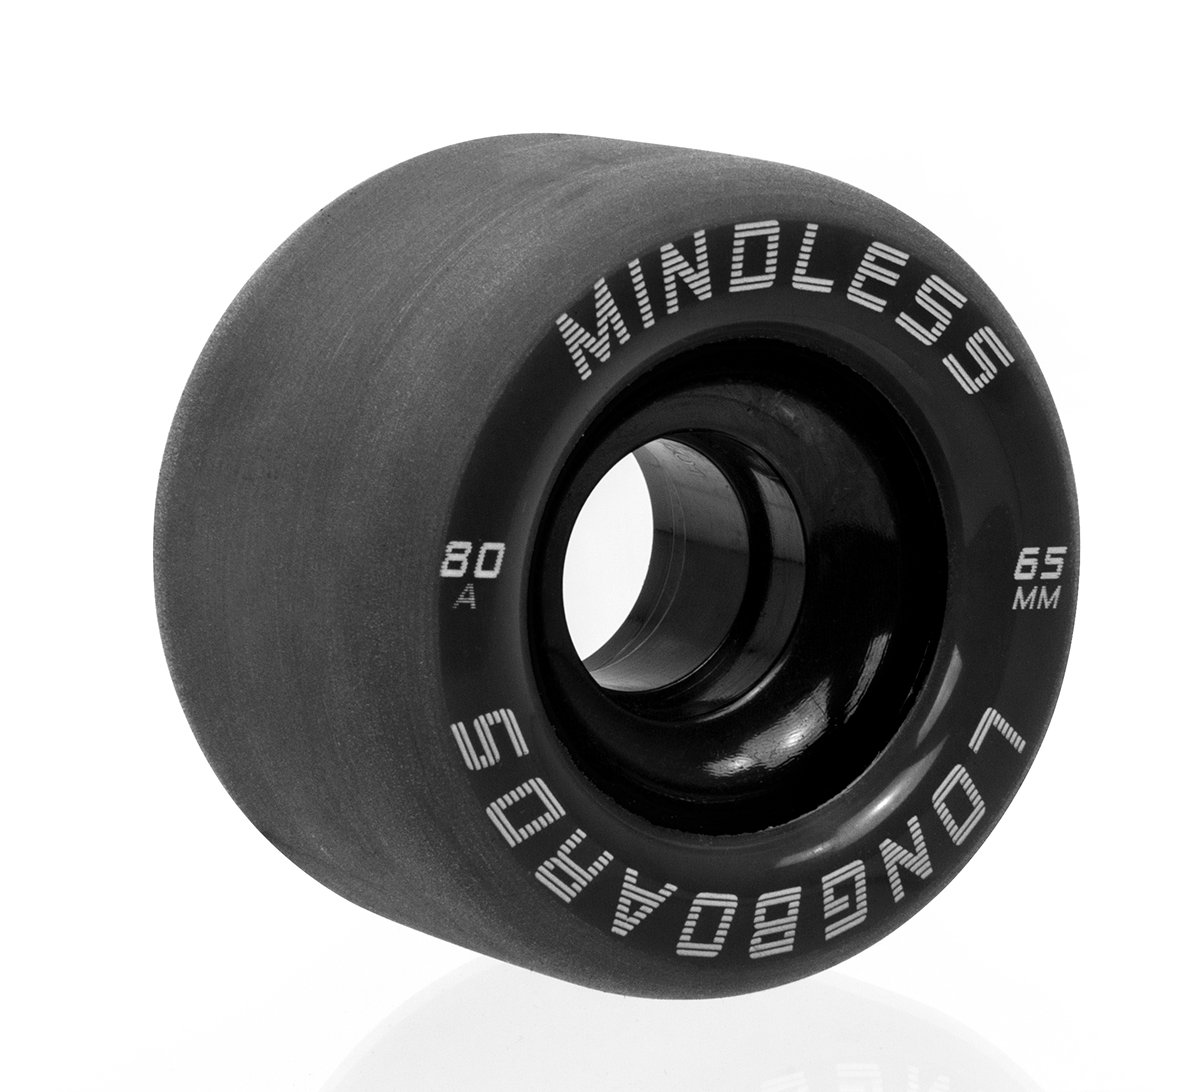 Mindless - Viper Wheels Black 65 x 44 mm 80a (sada 4 ks)